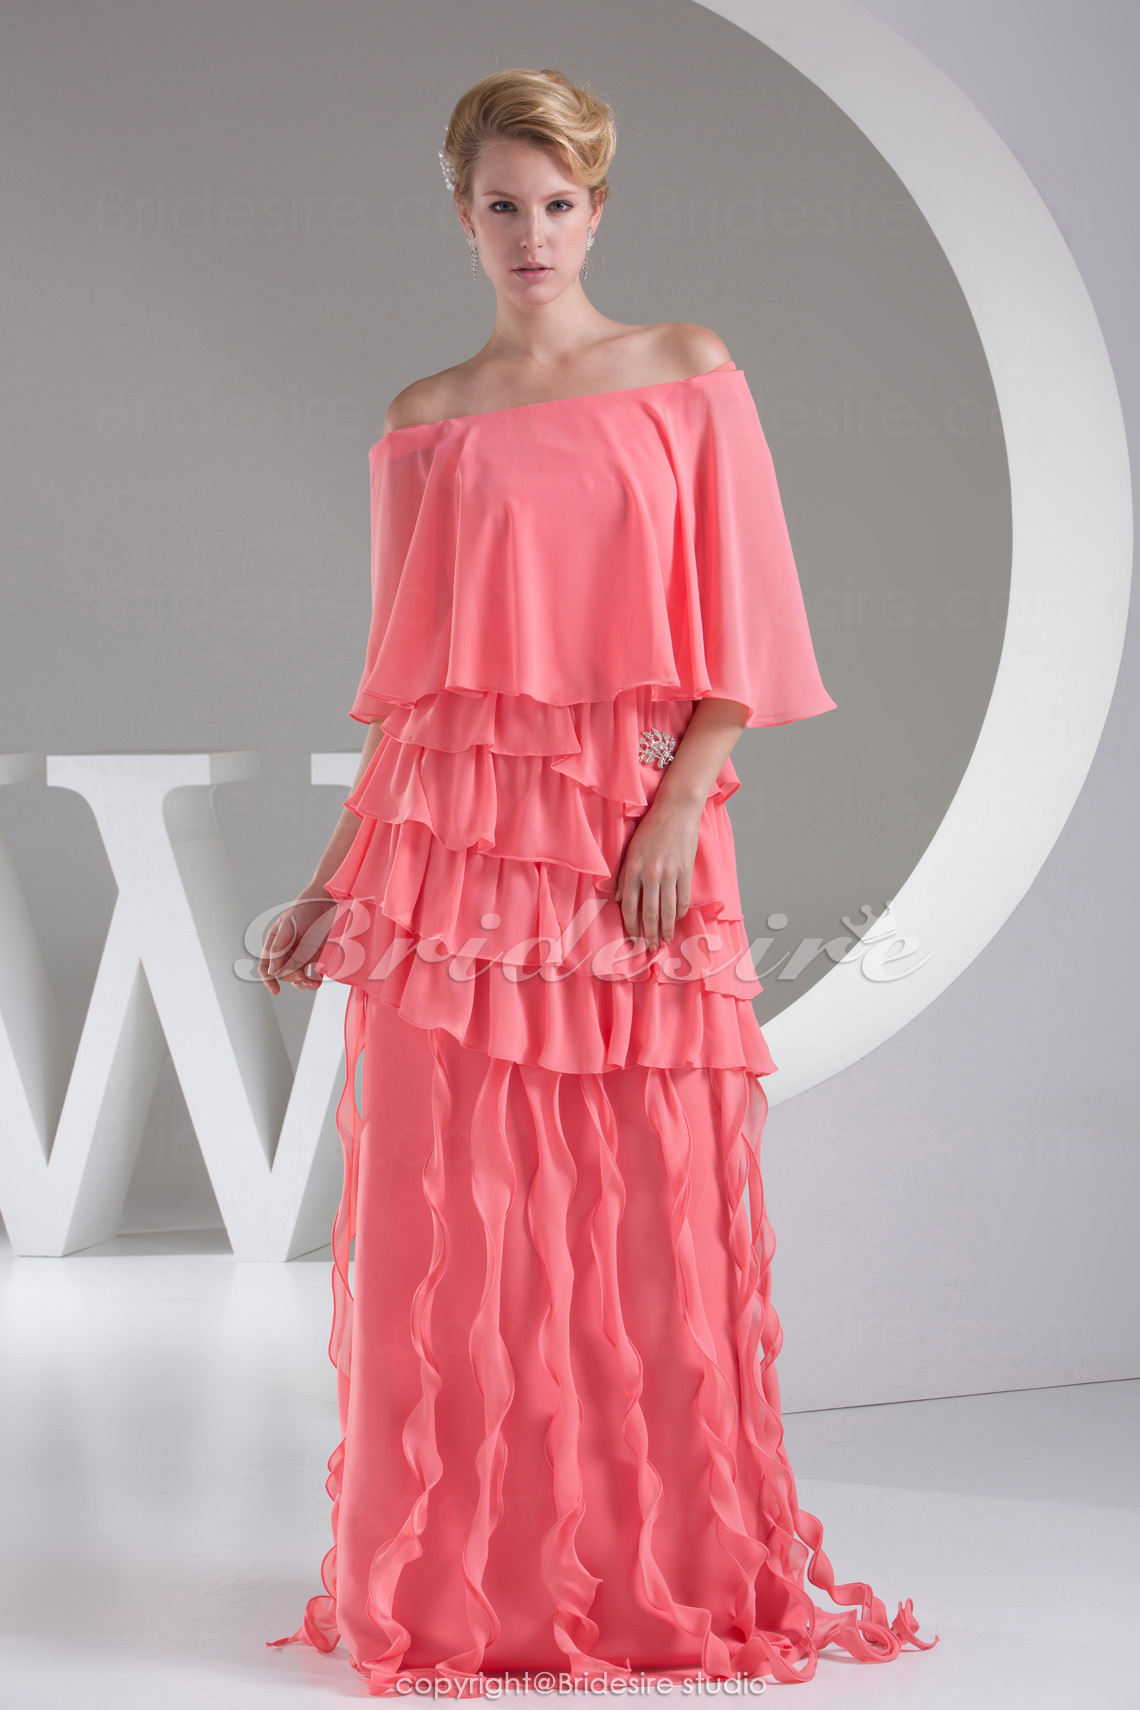 Sheath/Column Bateau Floor-length 3/4 Length Sleeve Chiffon Dress